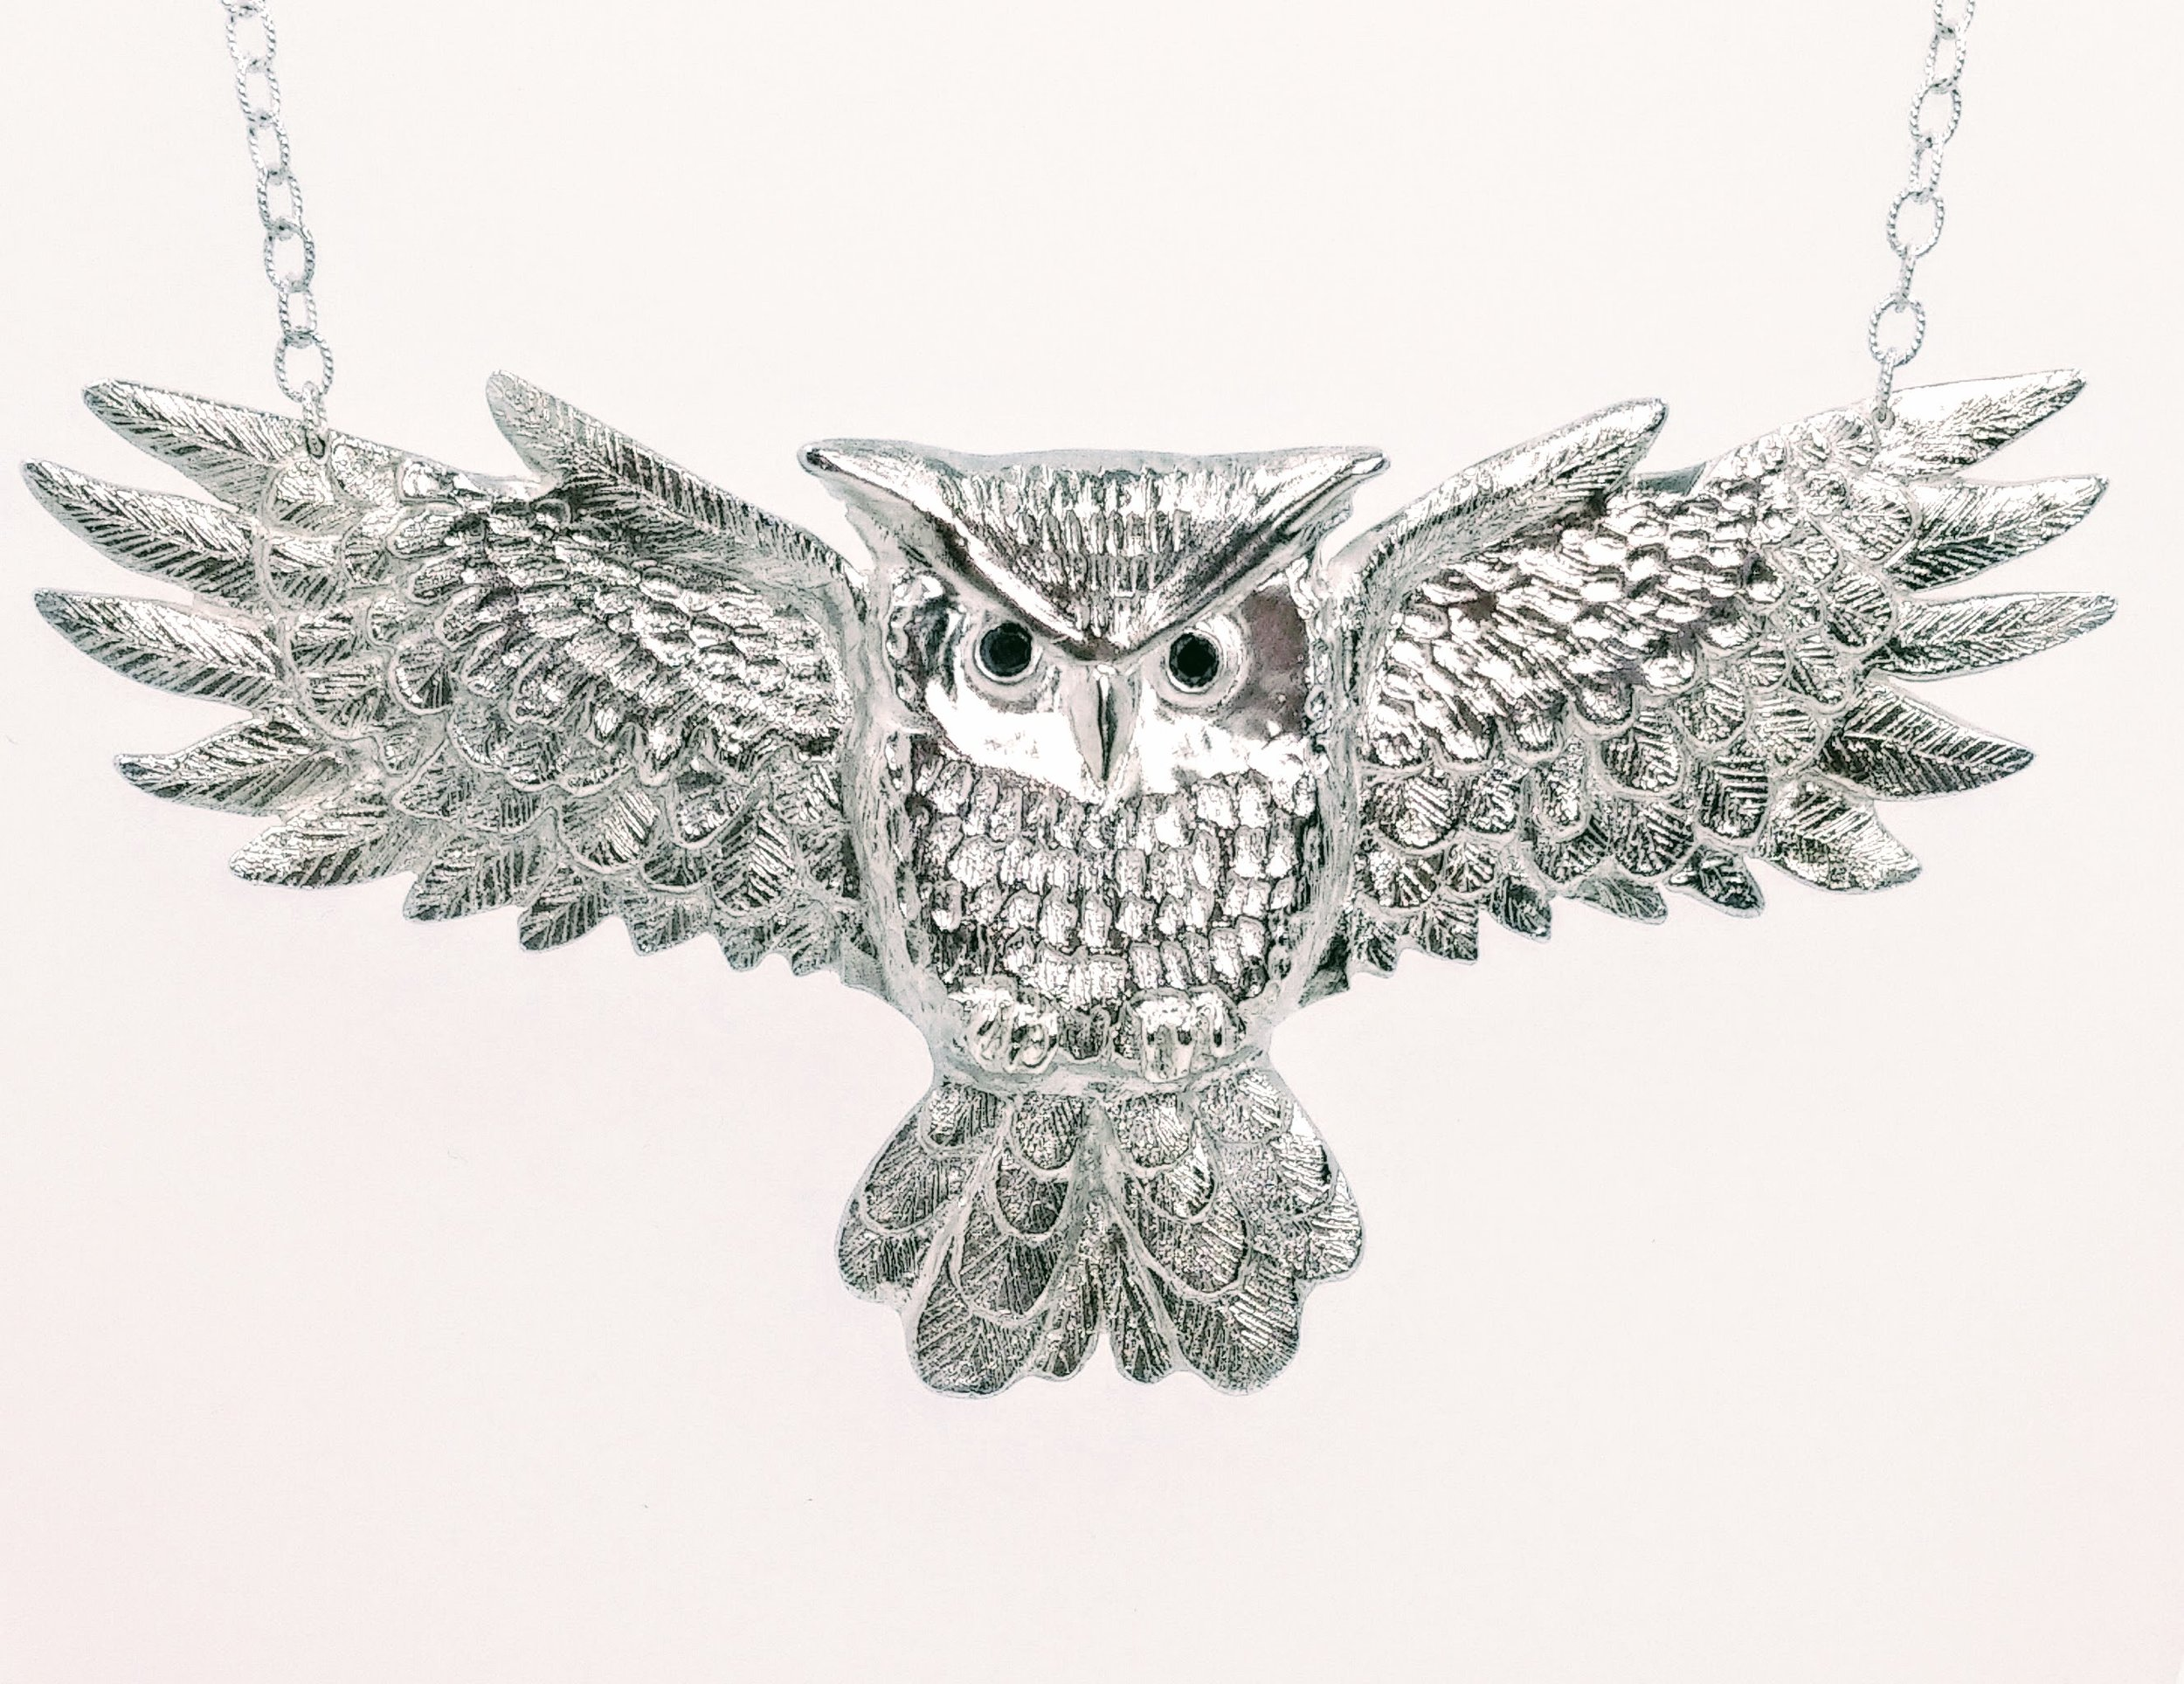 Large, silver owl necklace with black diamond eyes -  BUY